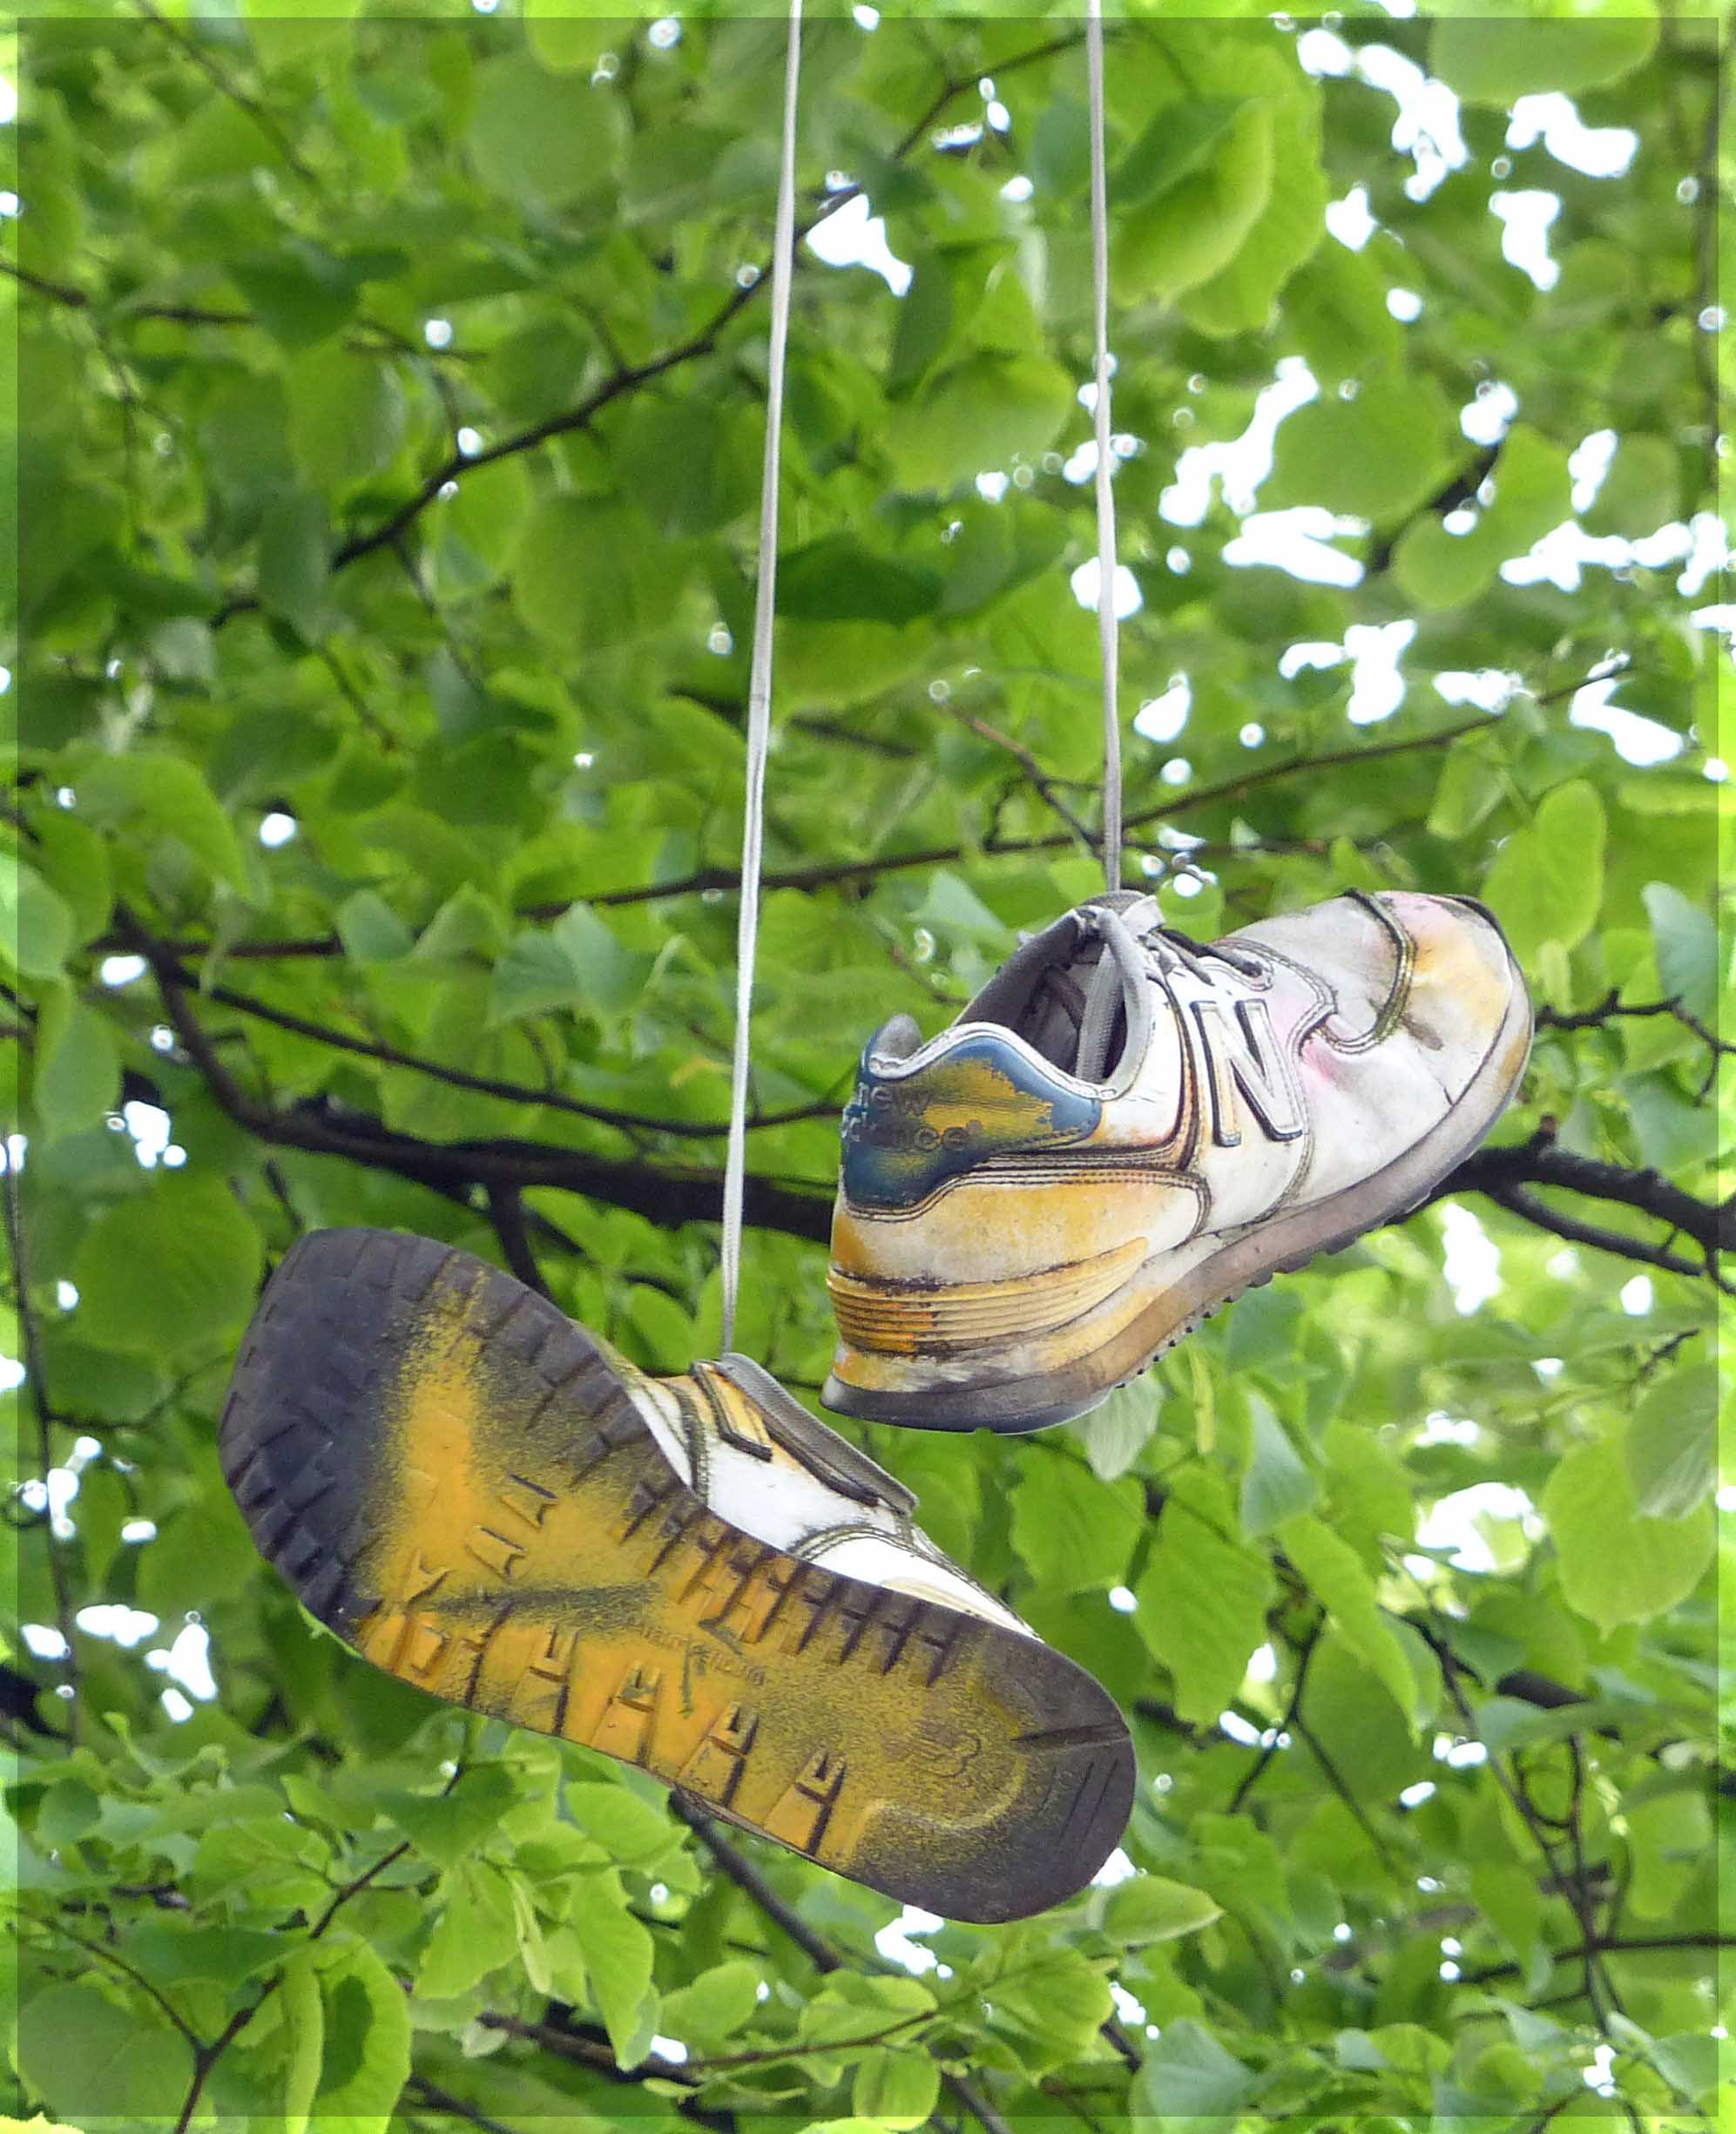 Spray-painted trainers hanging by a tree